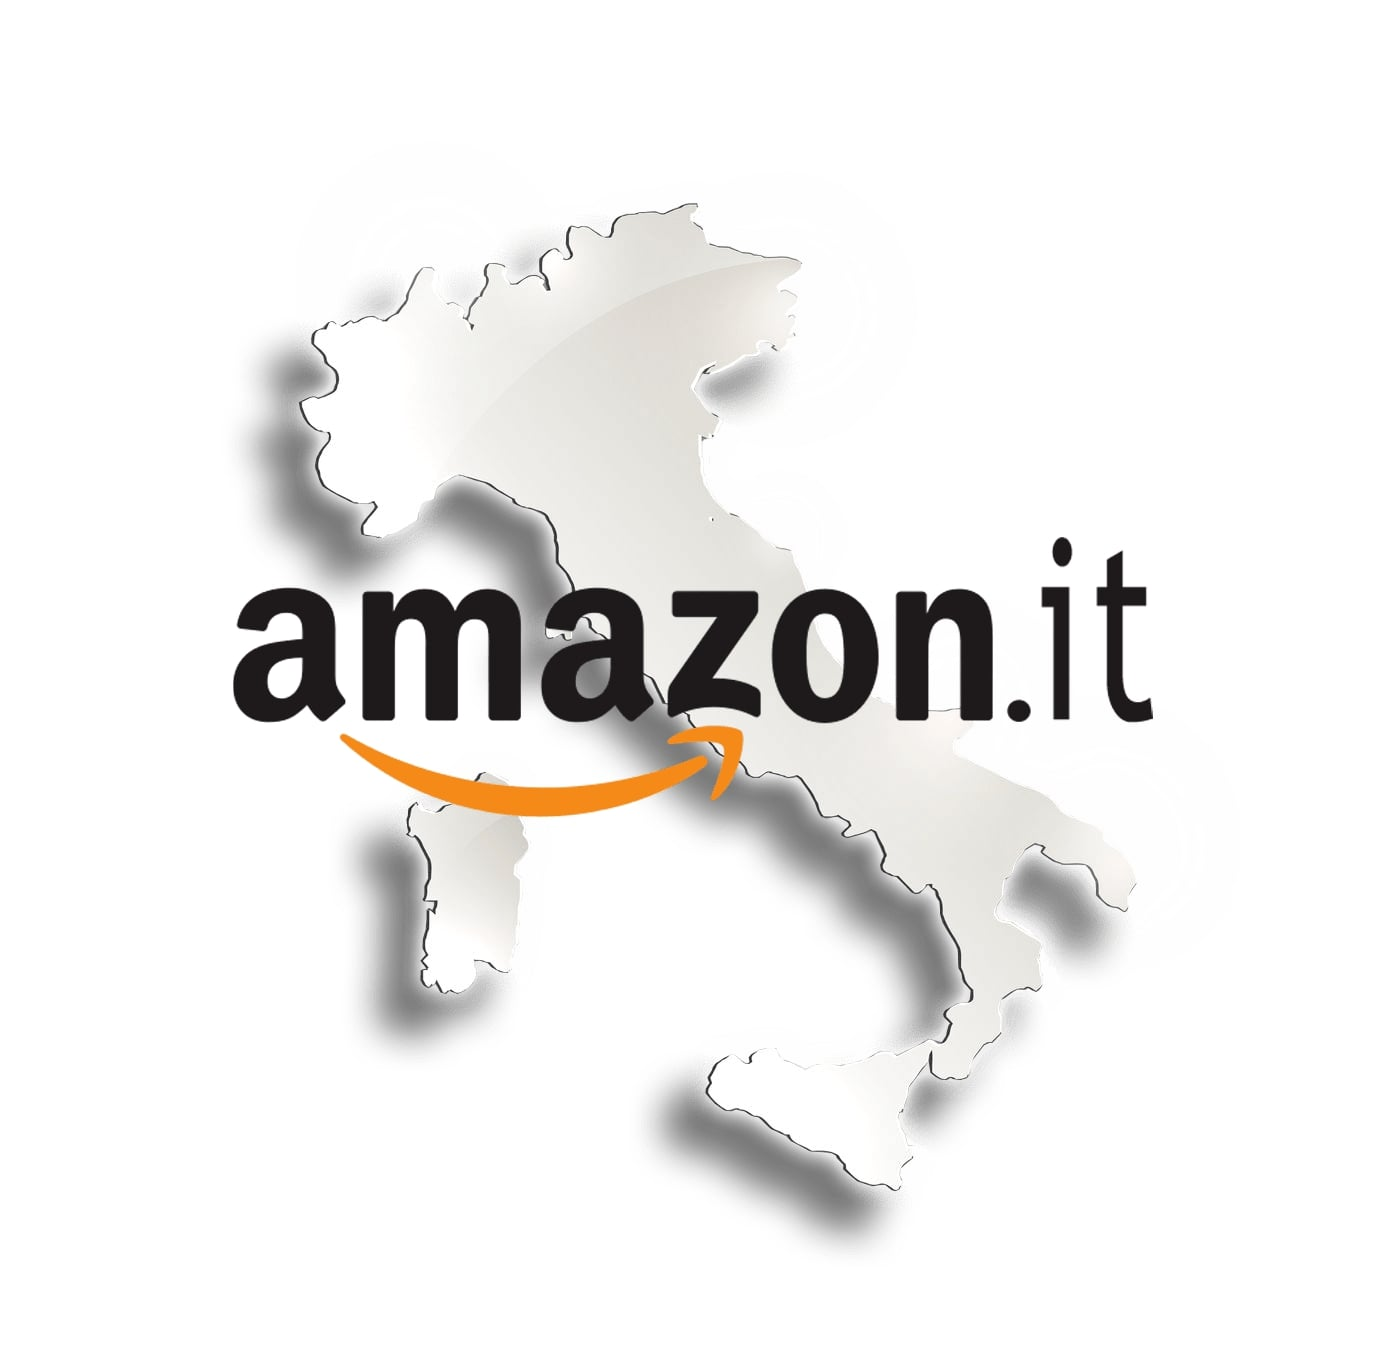 amazon.it-freigestellt-min